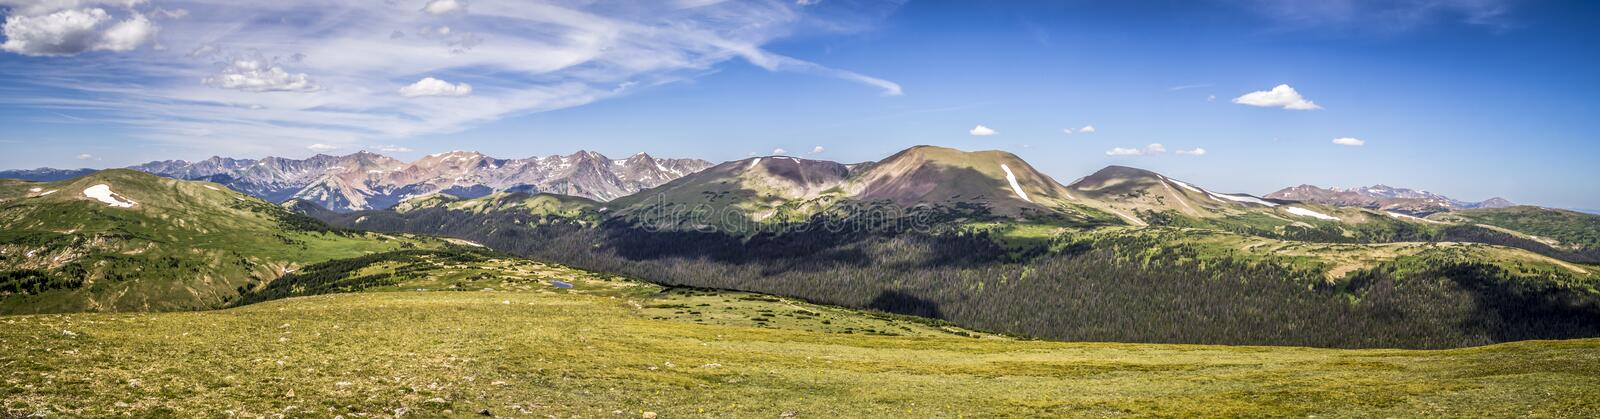 Rocky Mountain National Park Never Summer Wilderness. Colorado Parika Lake Arapaho National Forest Continental Divide Baker Gulch Grand County stock photos